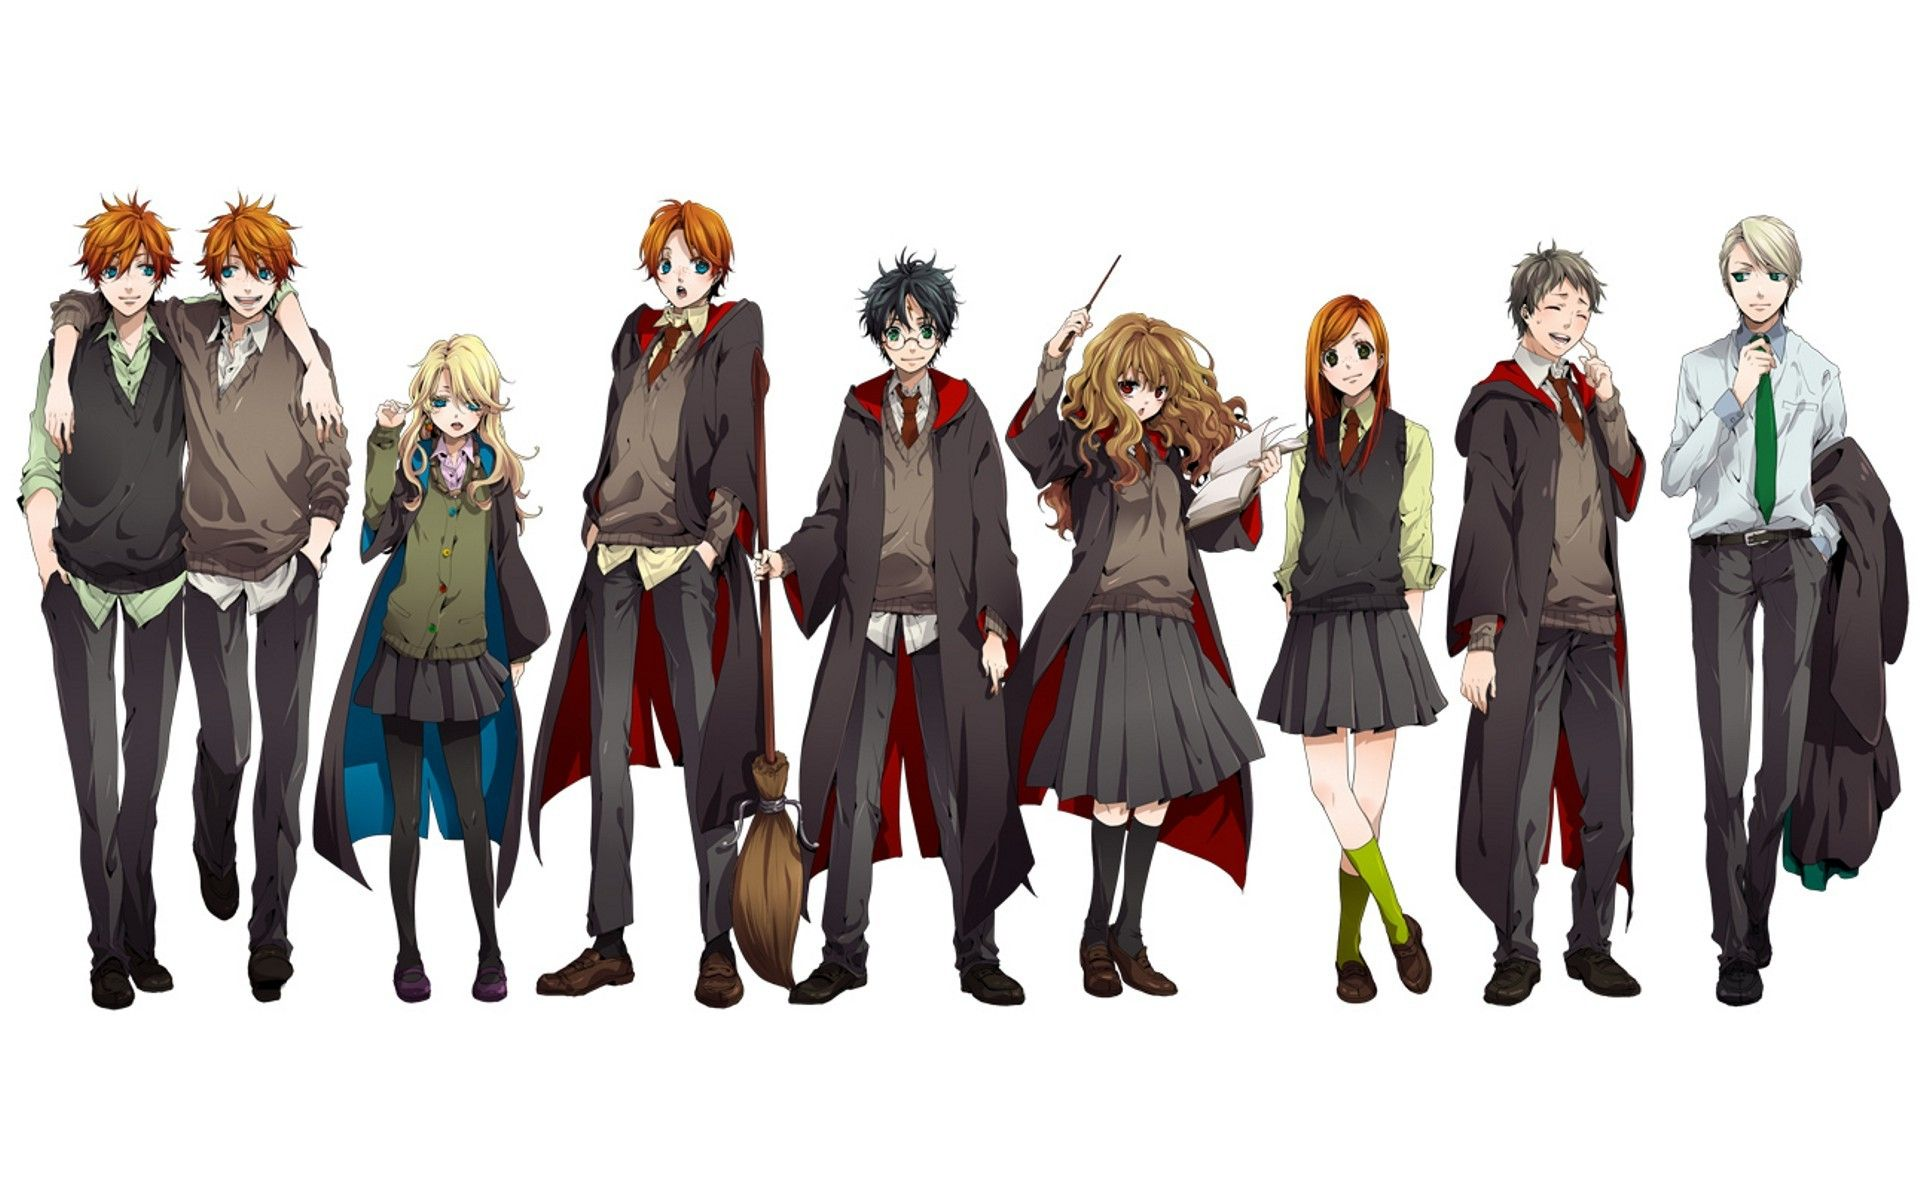 Harry Potter wizards wand Luna Lovegood anime Hermione Granger Ginny Weasley students Ron Weasley Draco Malfoy Neville Longbottom witches white background Fred Weasley George Weasley broomsticks  / 1920x1200 Wallpaper